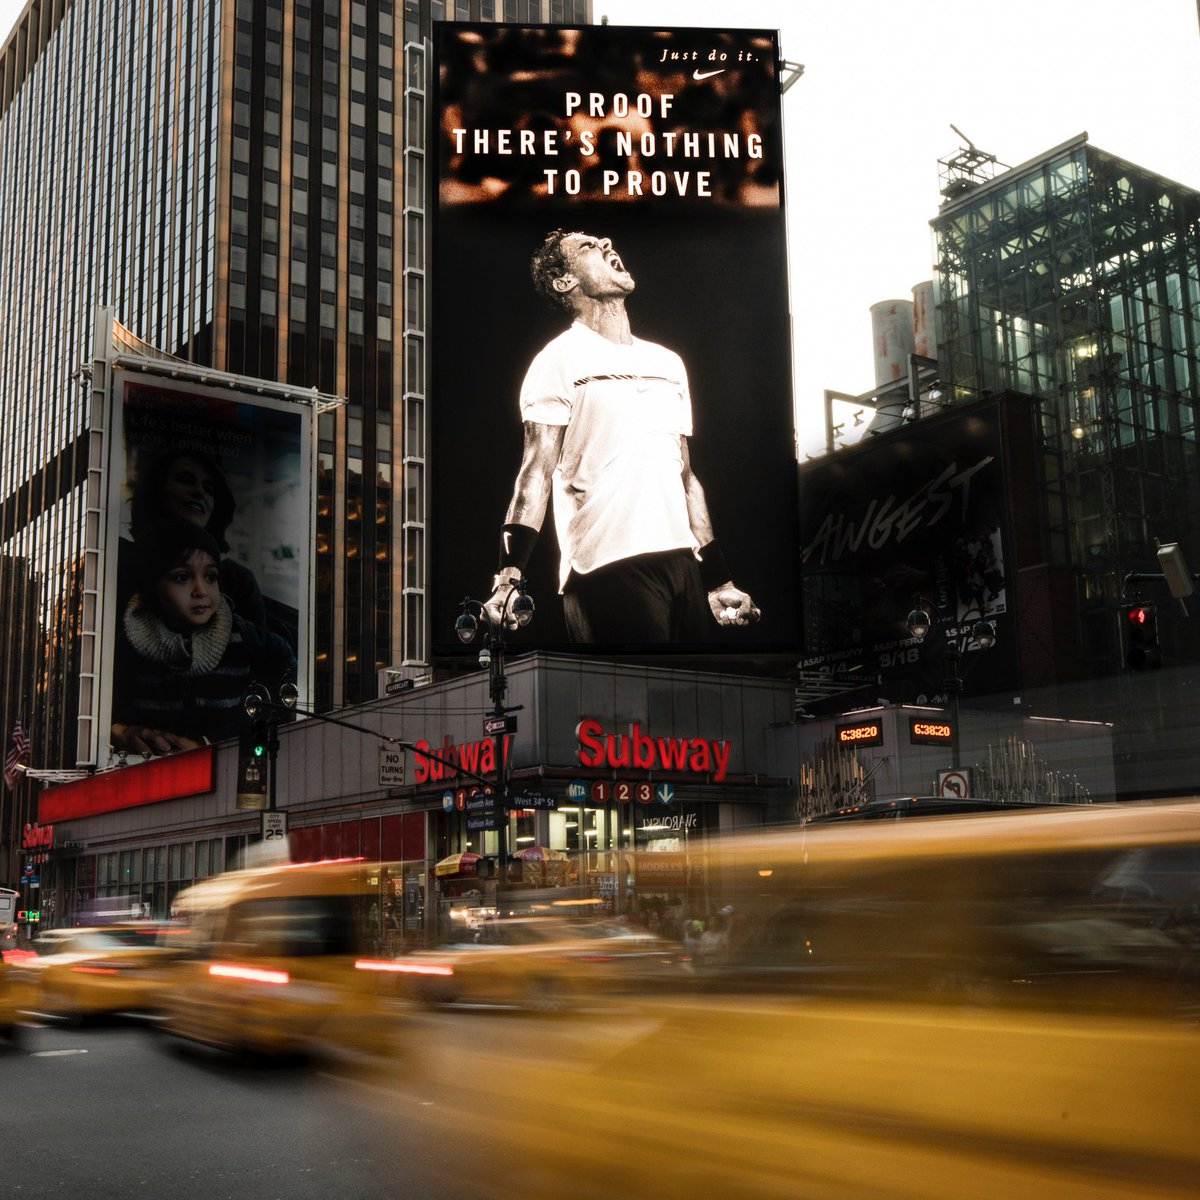 .@Nike has put this poster in the big city!! It looks amazing, don't you think? Thanks @nike for your support #NY